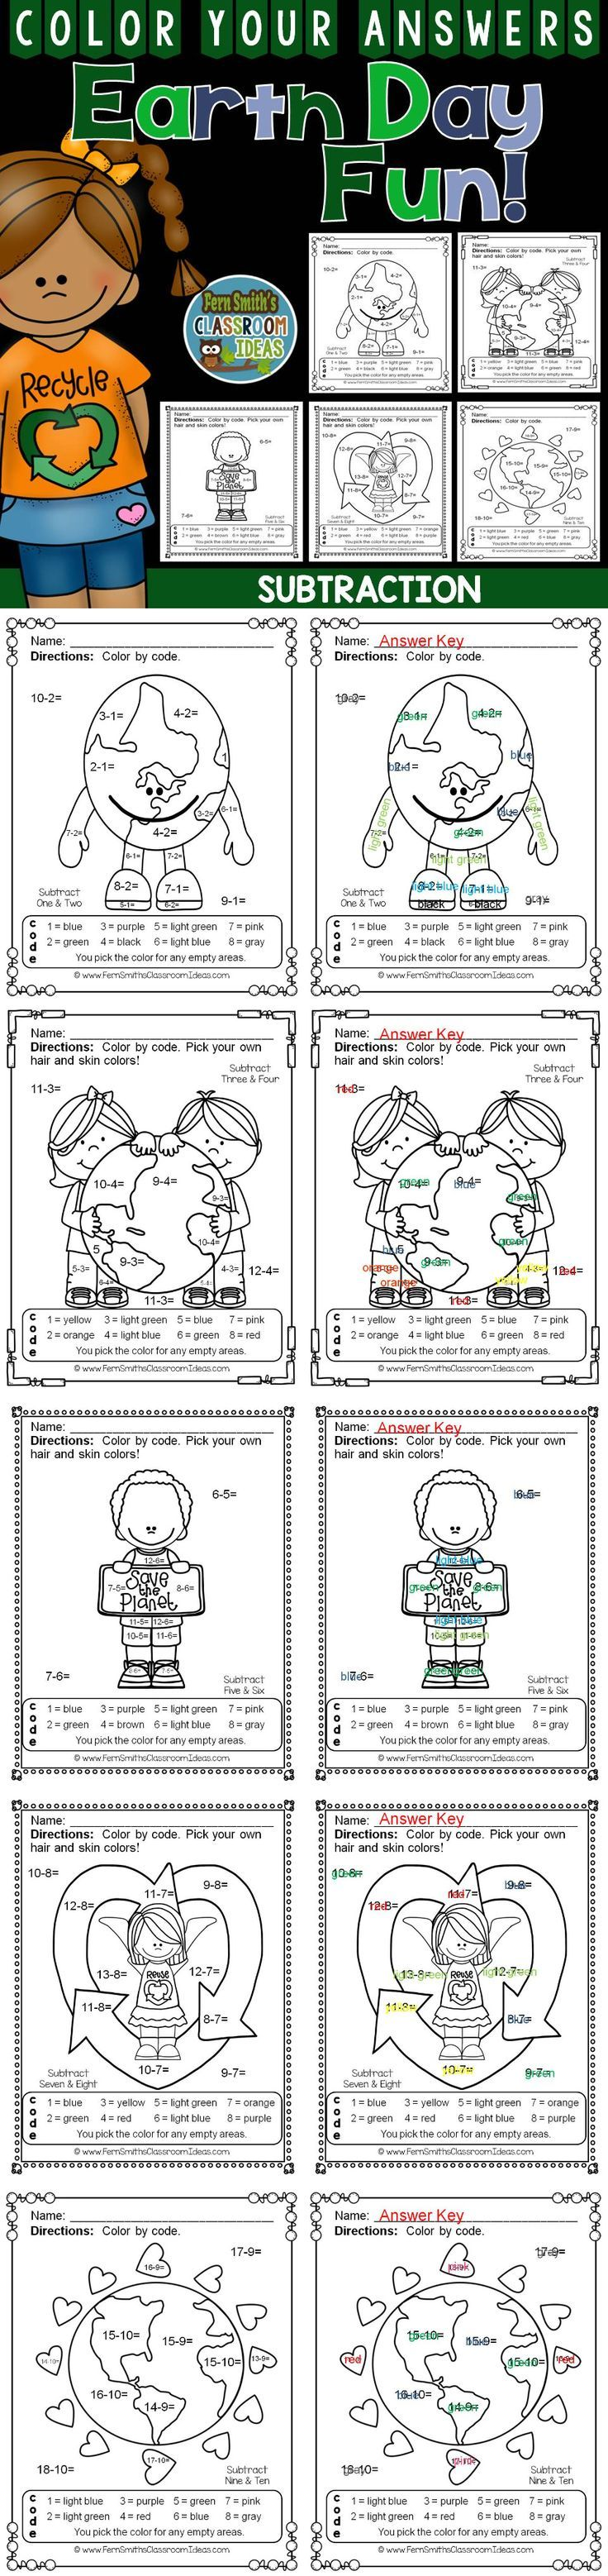 501 best subtraction activities for k 3rd grade images on